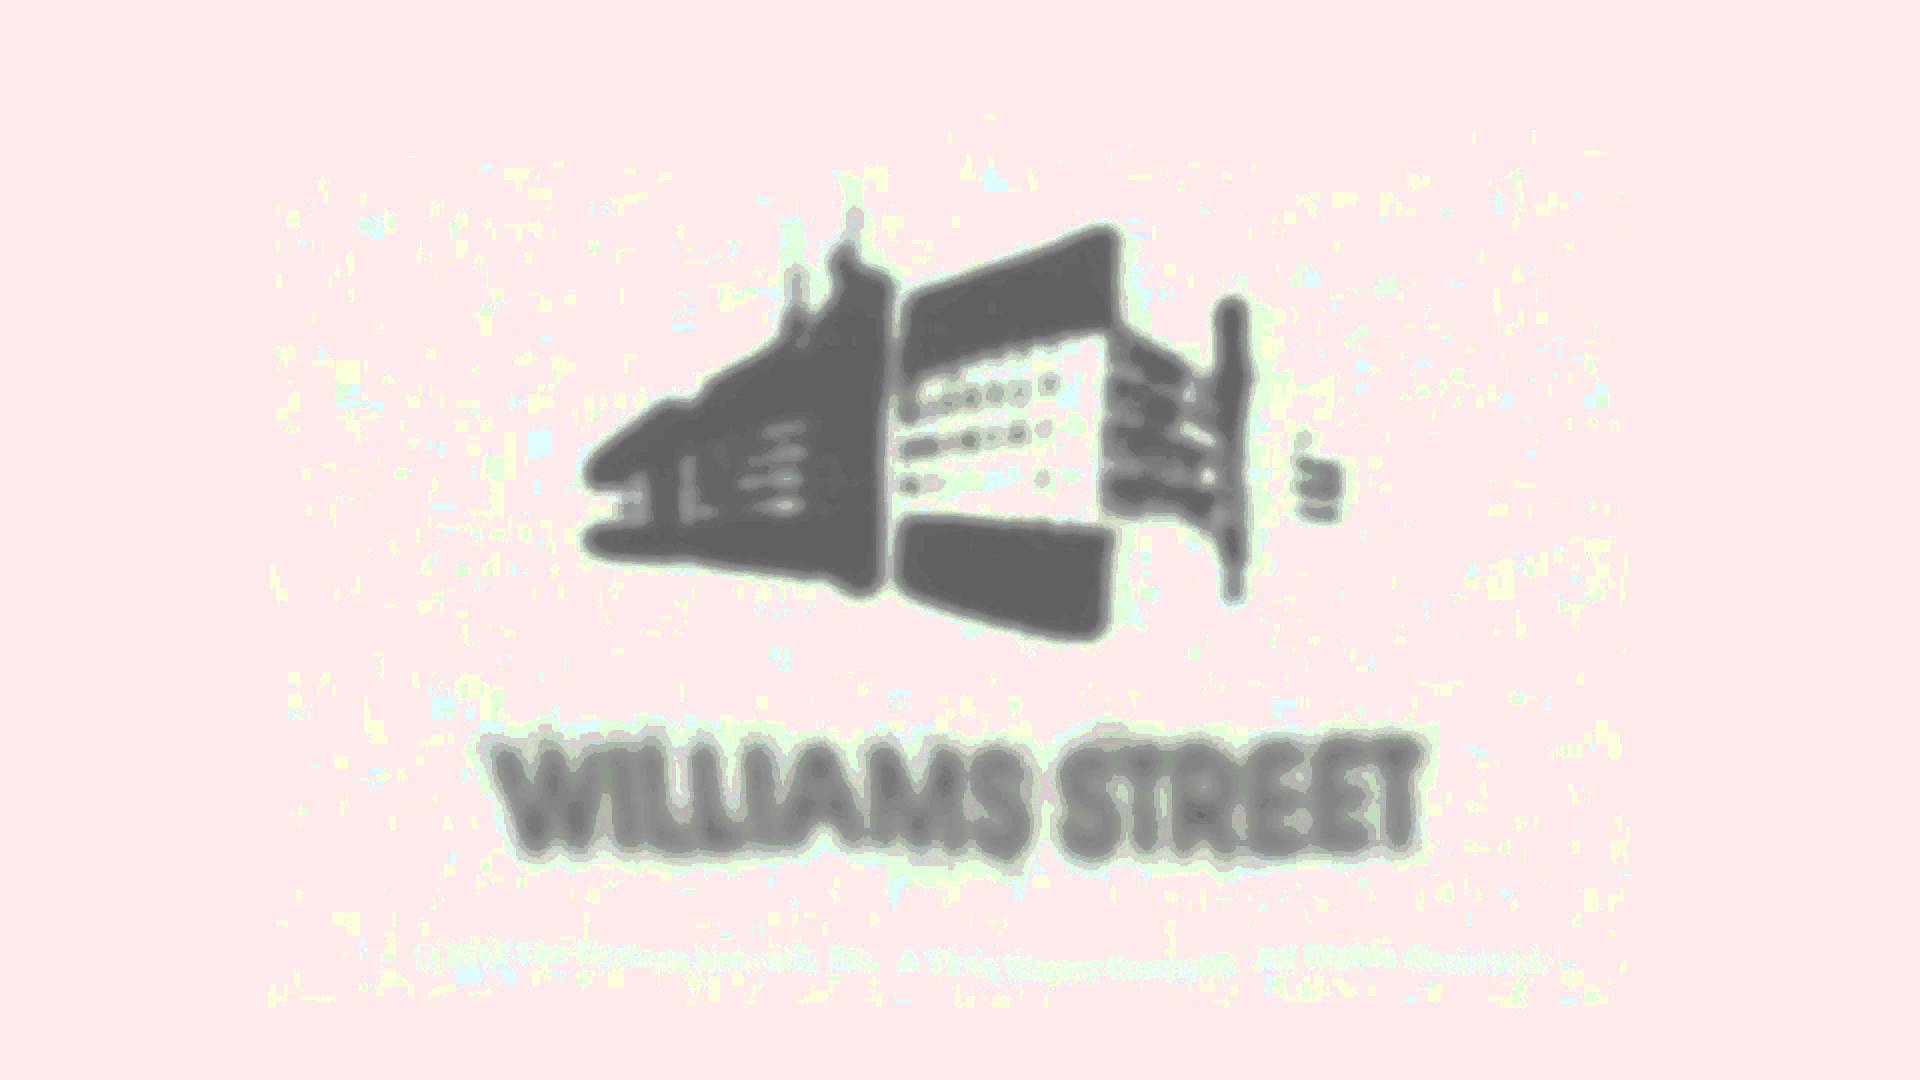 Williams street Logos.